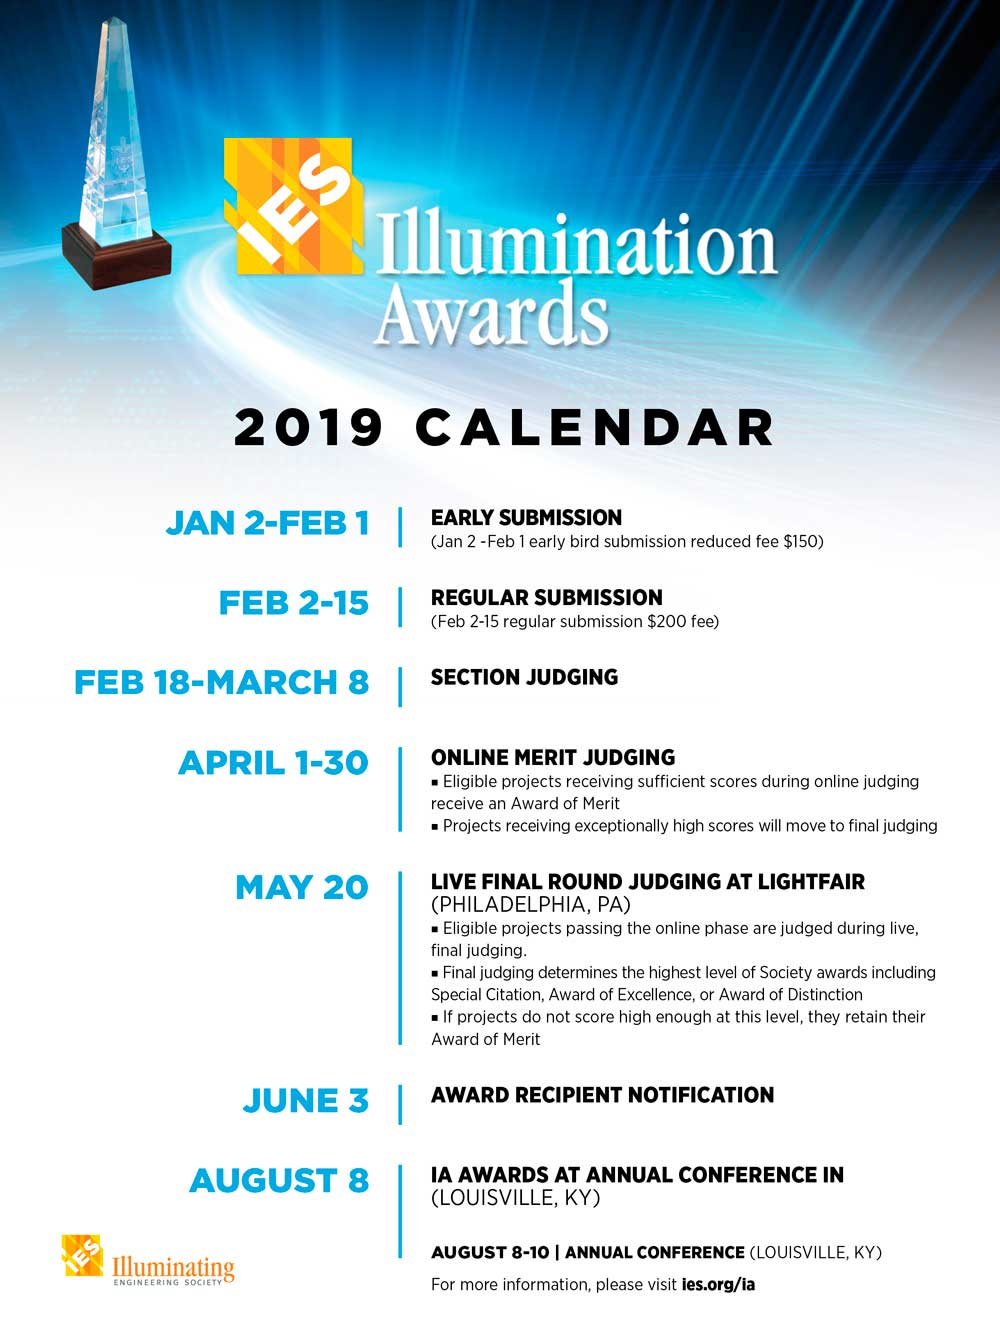 Abierta la convocatoria de los IES Illumination Awards 2019